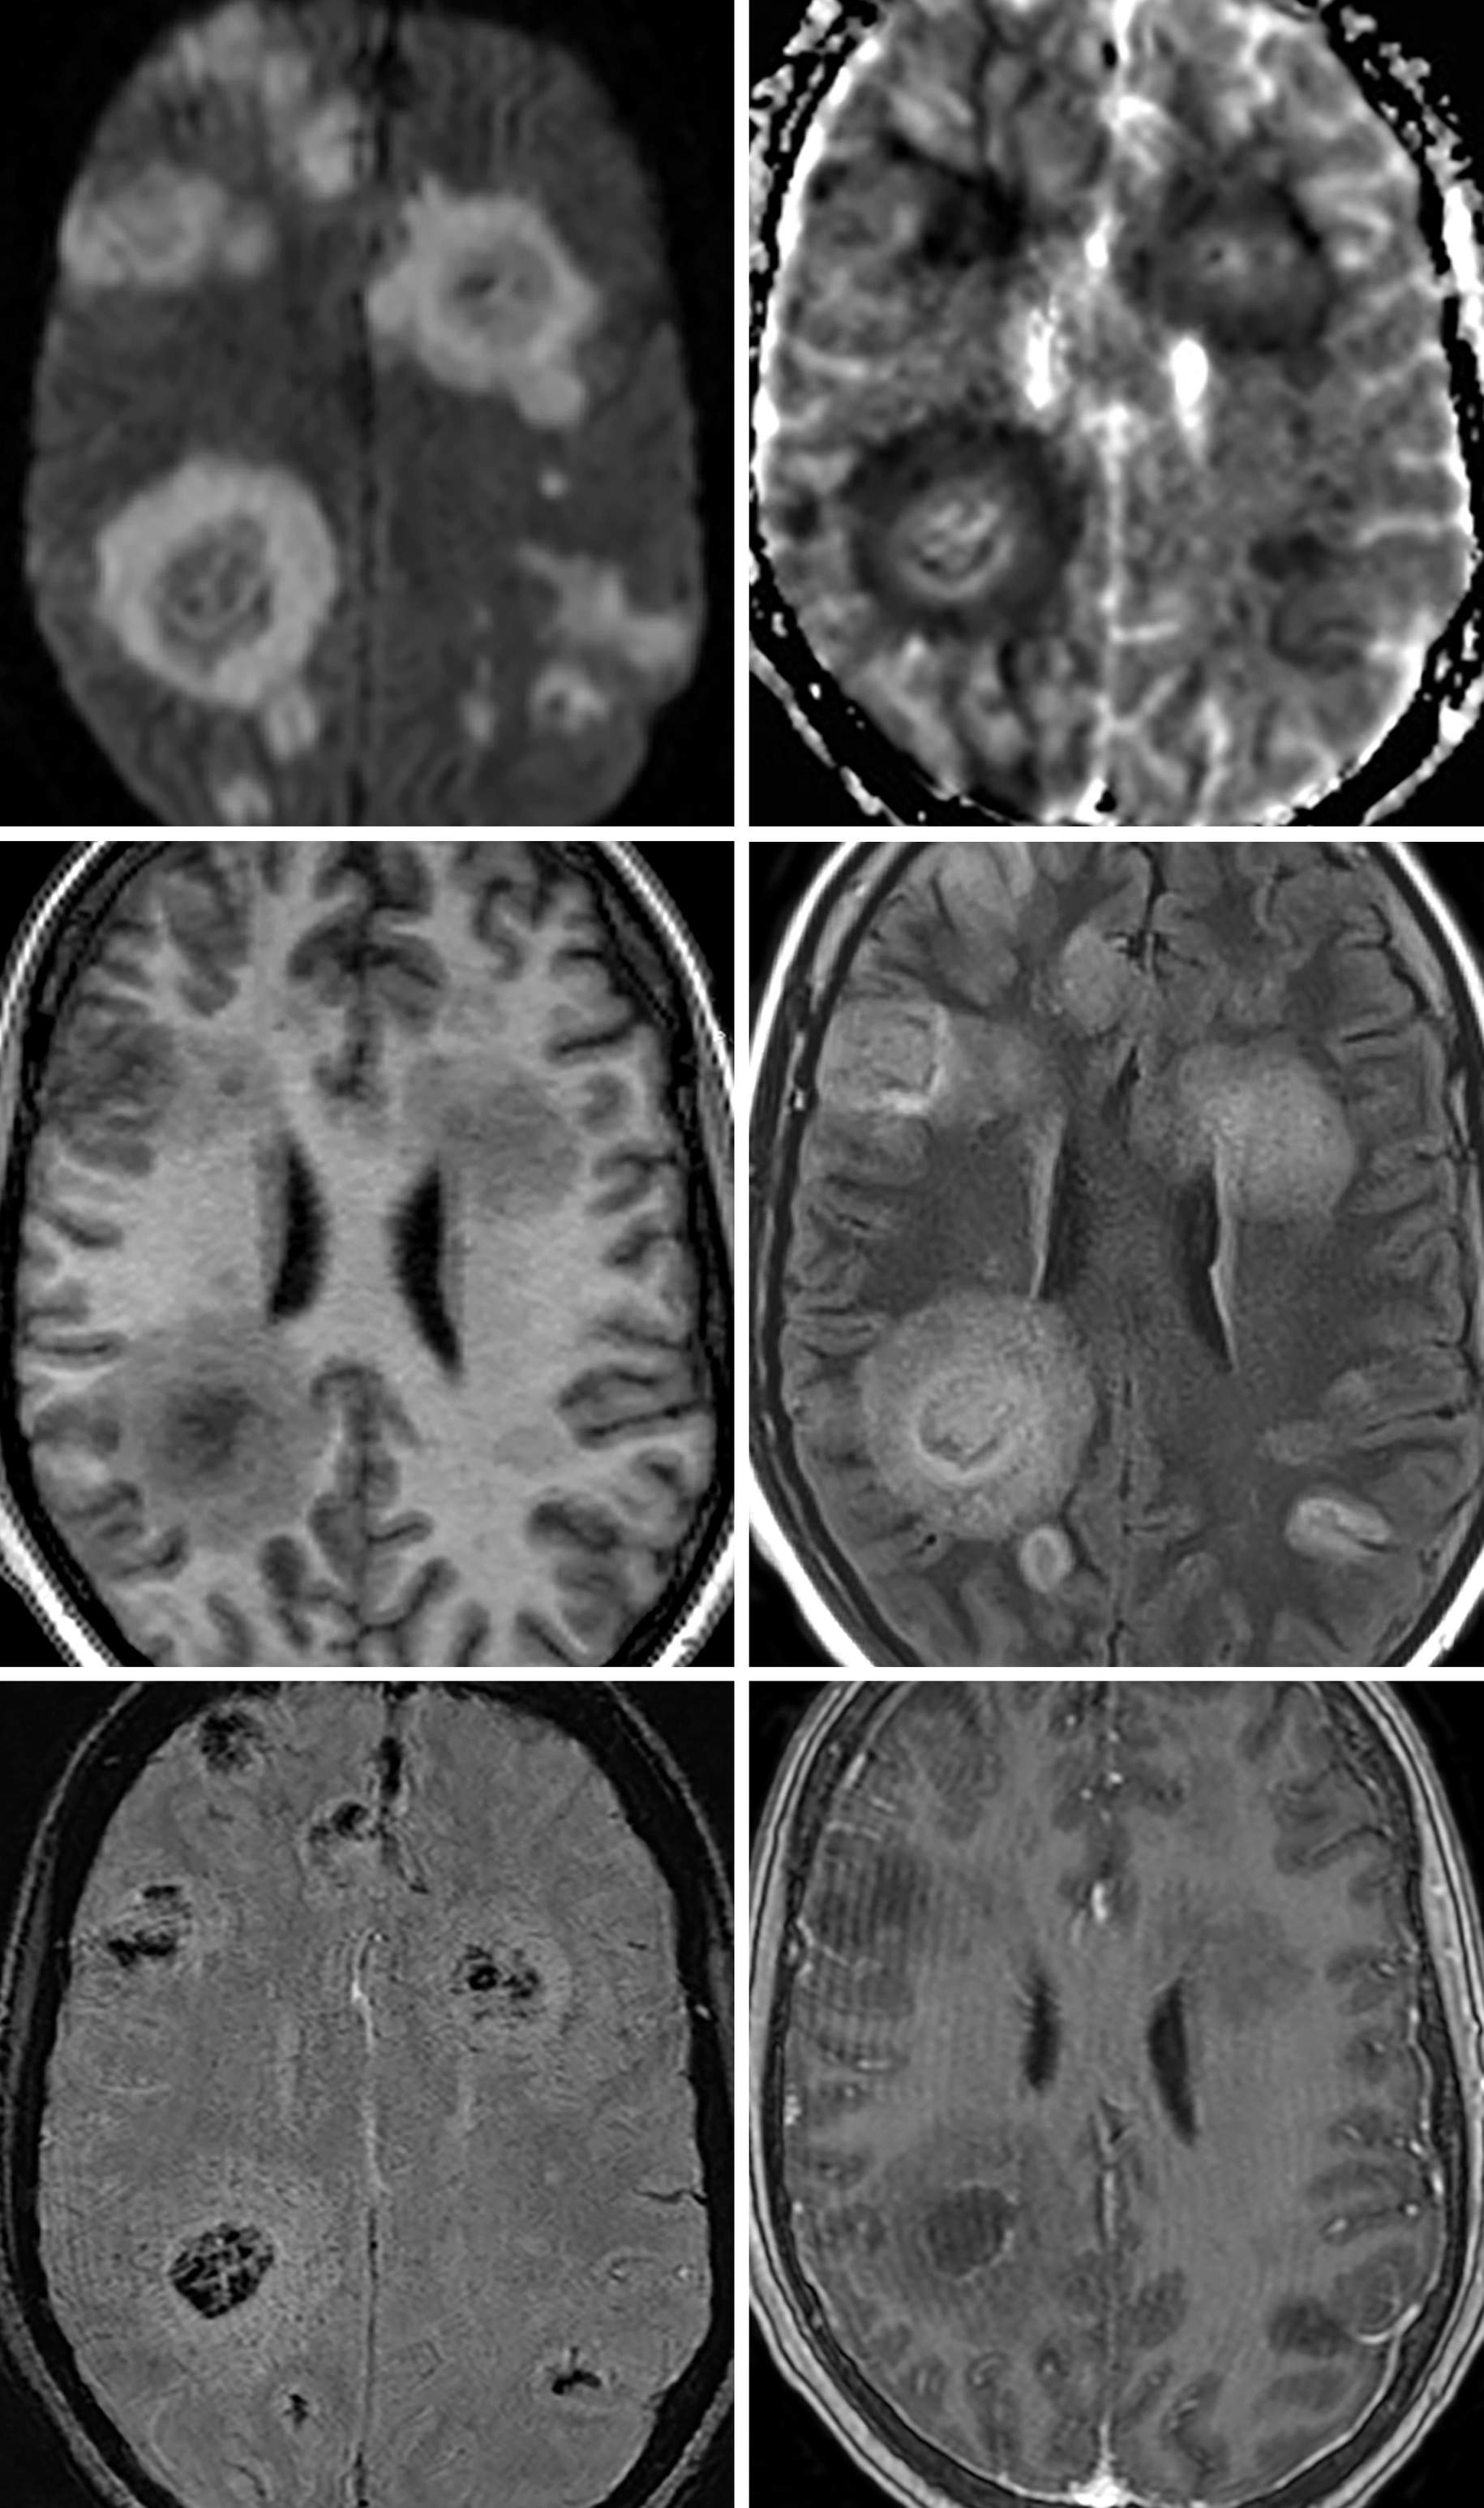 Figure 1: In this patient, there are multiple randomly distributed lesions scattered throughout bilateral cerebral hemispheres. (Top Left and Top Right) The lesions demonstrate a ring pattern, or rim of peripheral restricted diffusion and central hypointense DWI signal. (Middle Left and Middle Right) The rim pattern of signal abnormality carries through on all sequences. (Bottom Left) In this SWI image, there is central hypointense signal, which often corresponds to a combination of hemorrhage and fungal elements. (Bottom Right) As in most patients with aspergillosis, there is little to no peripheral enhancement.